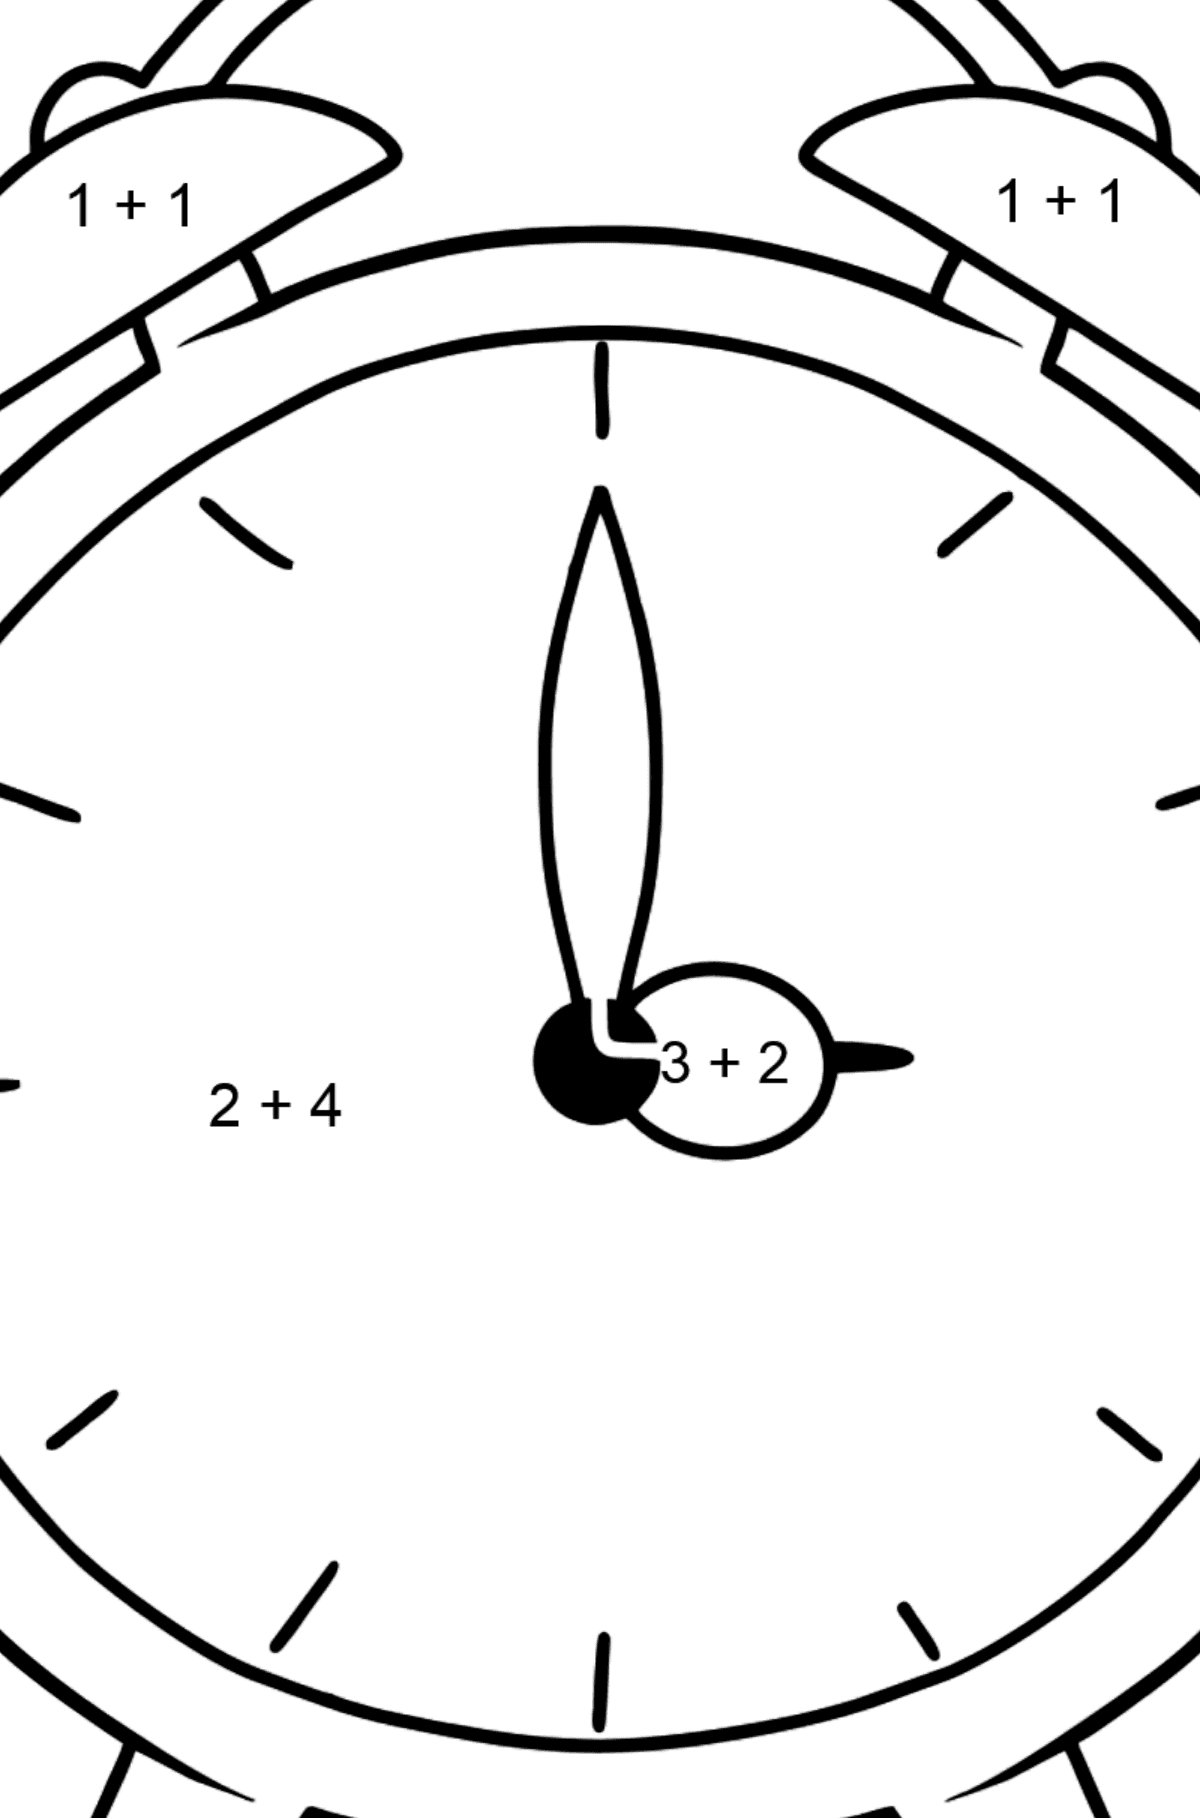 Alarm Clock coloring page - Math Coloring - Addition for Kids